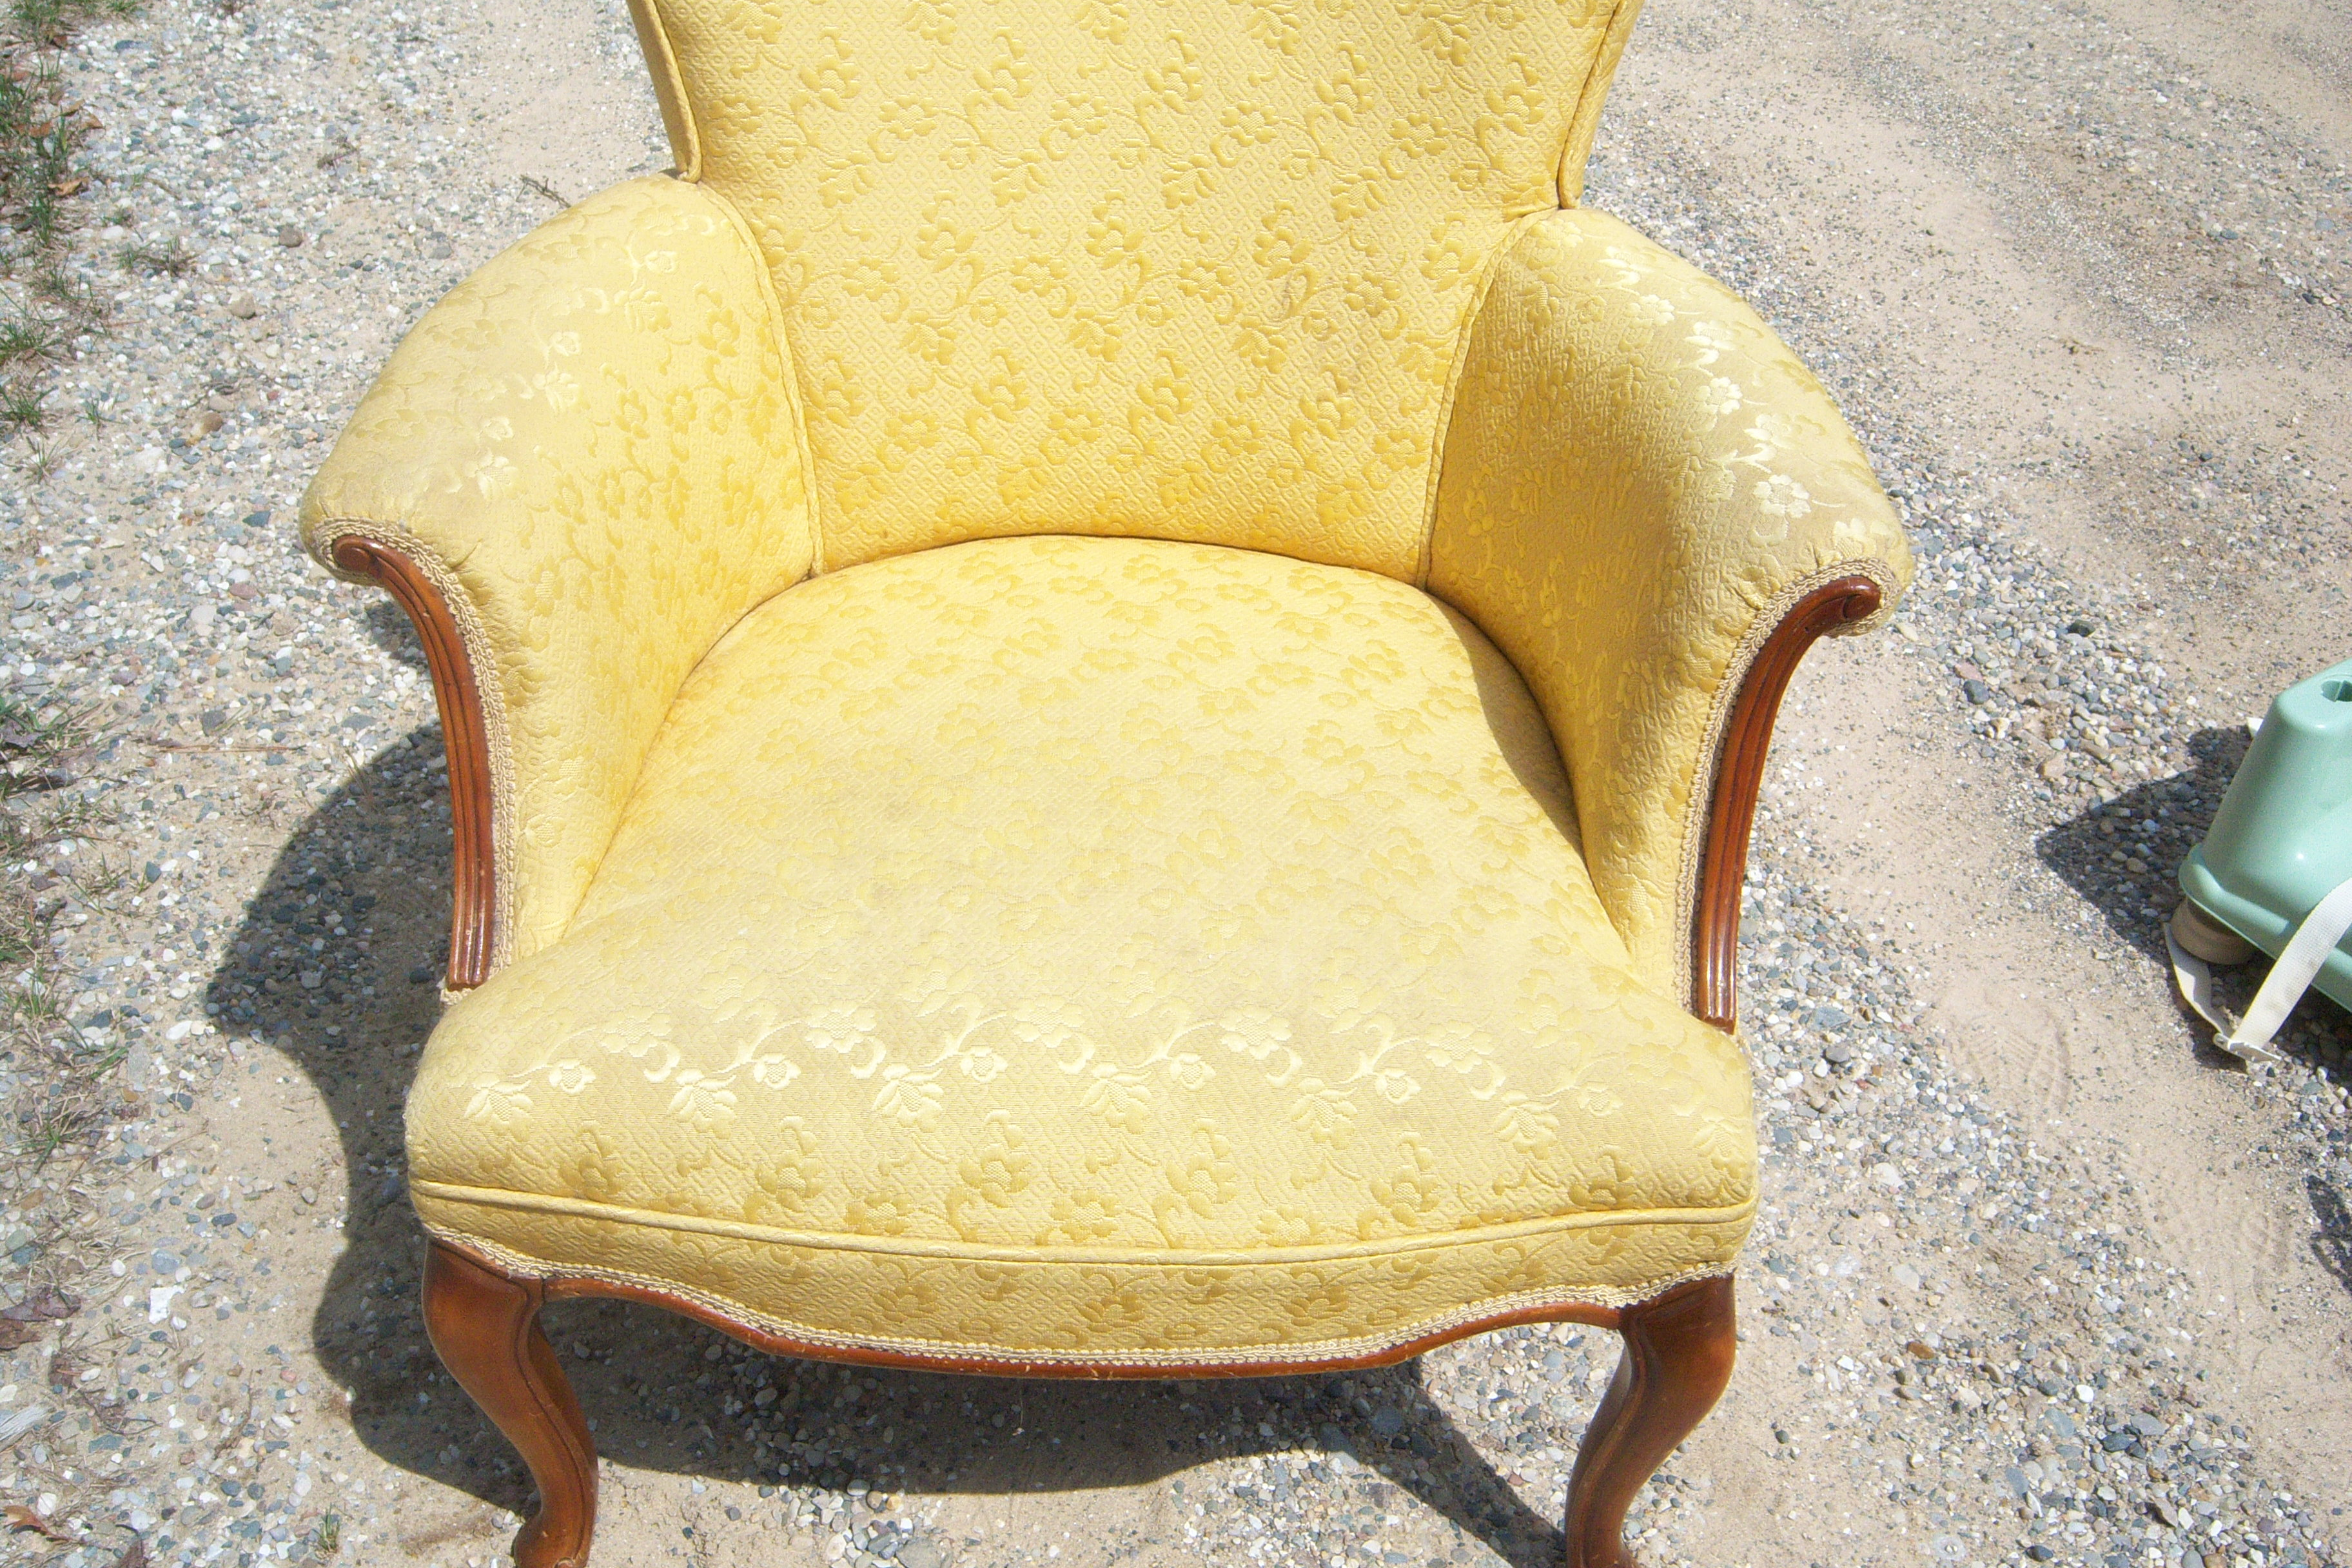 2 Antique Yellow Chairs For Sale Antiques